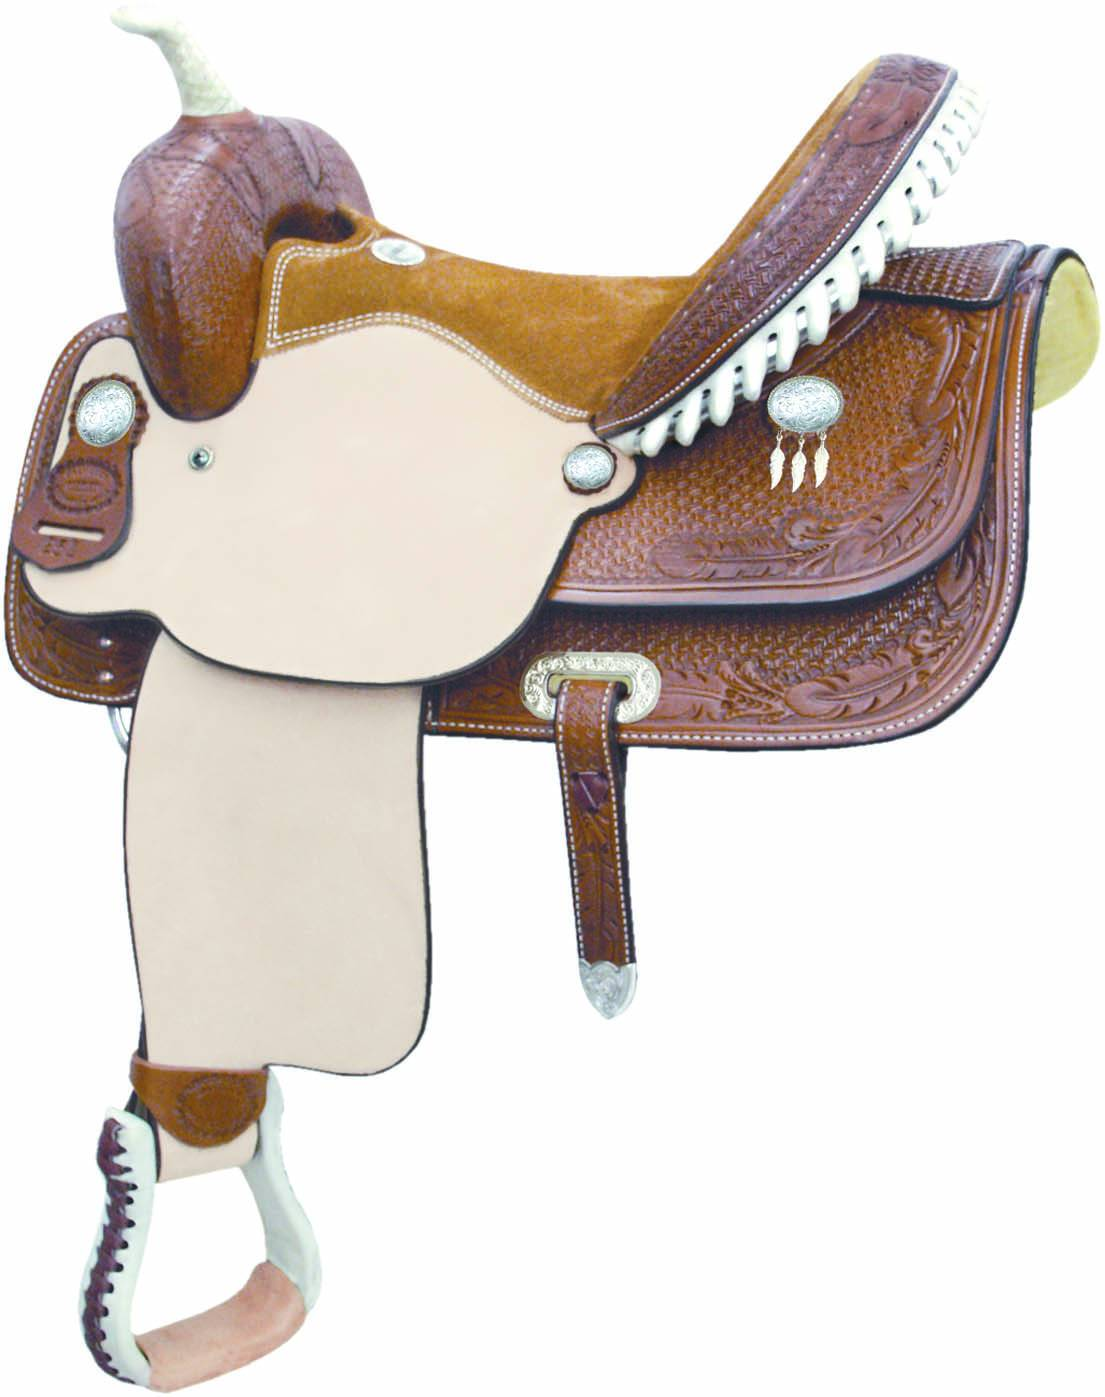 Billy Cook Saddlery Flex Feather Racer